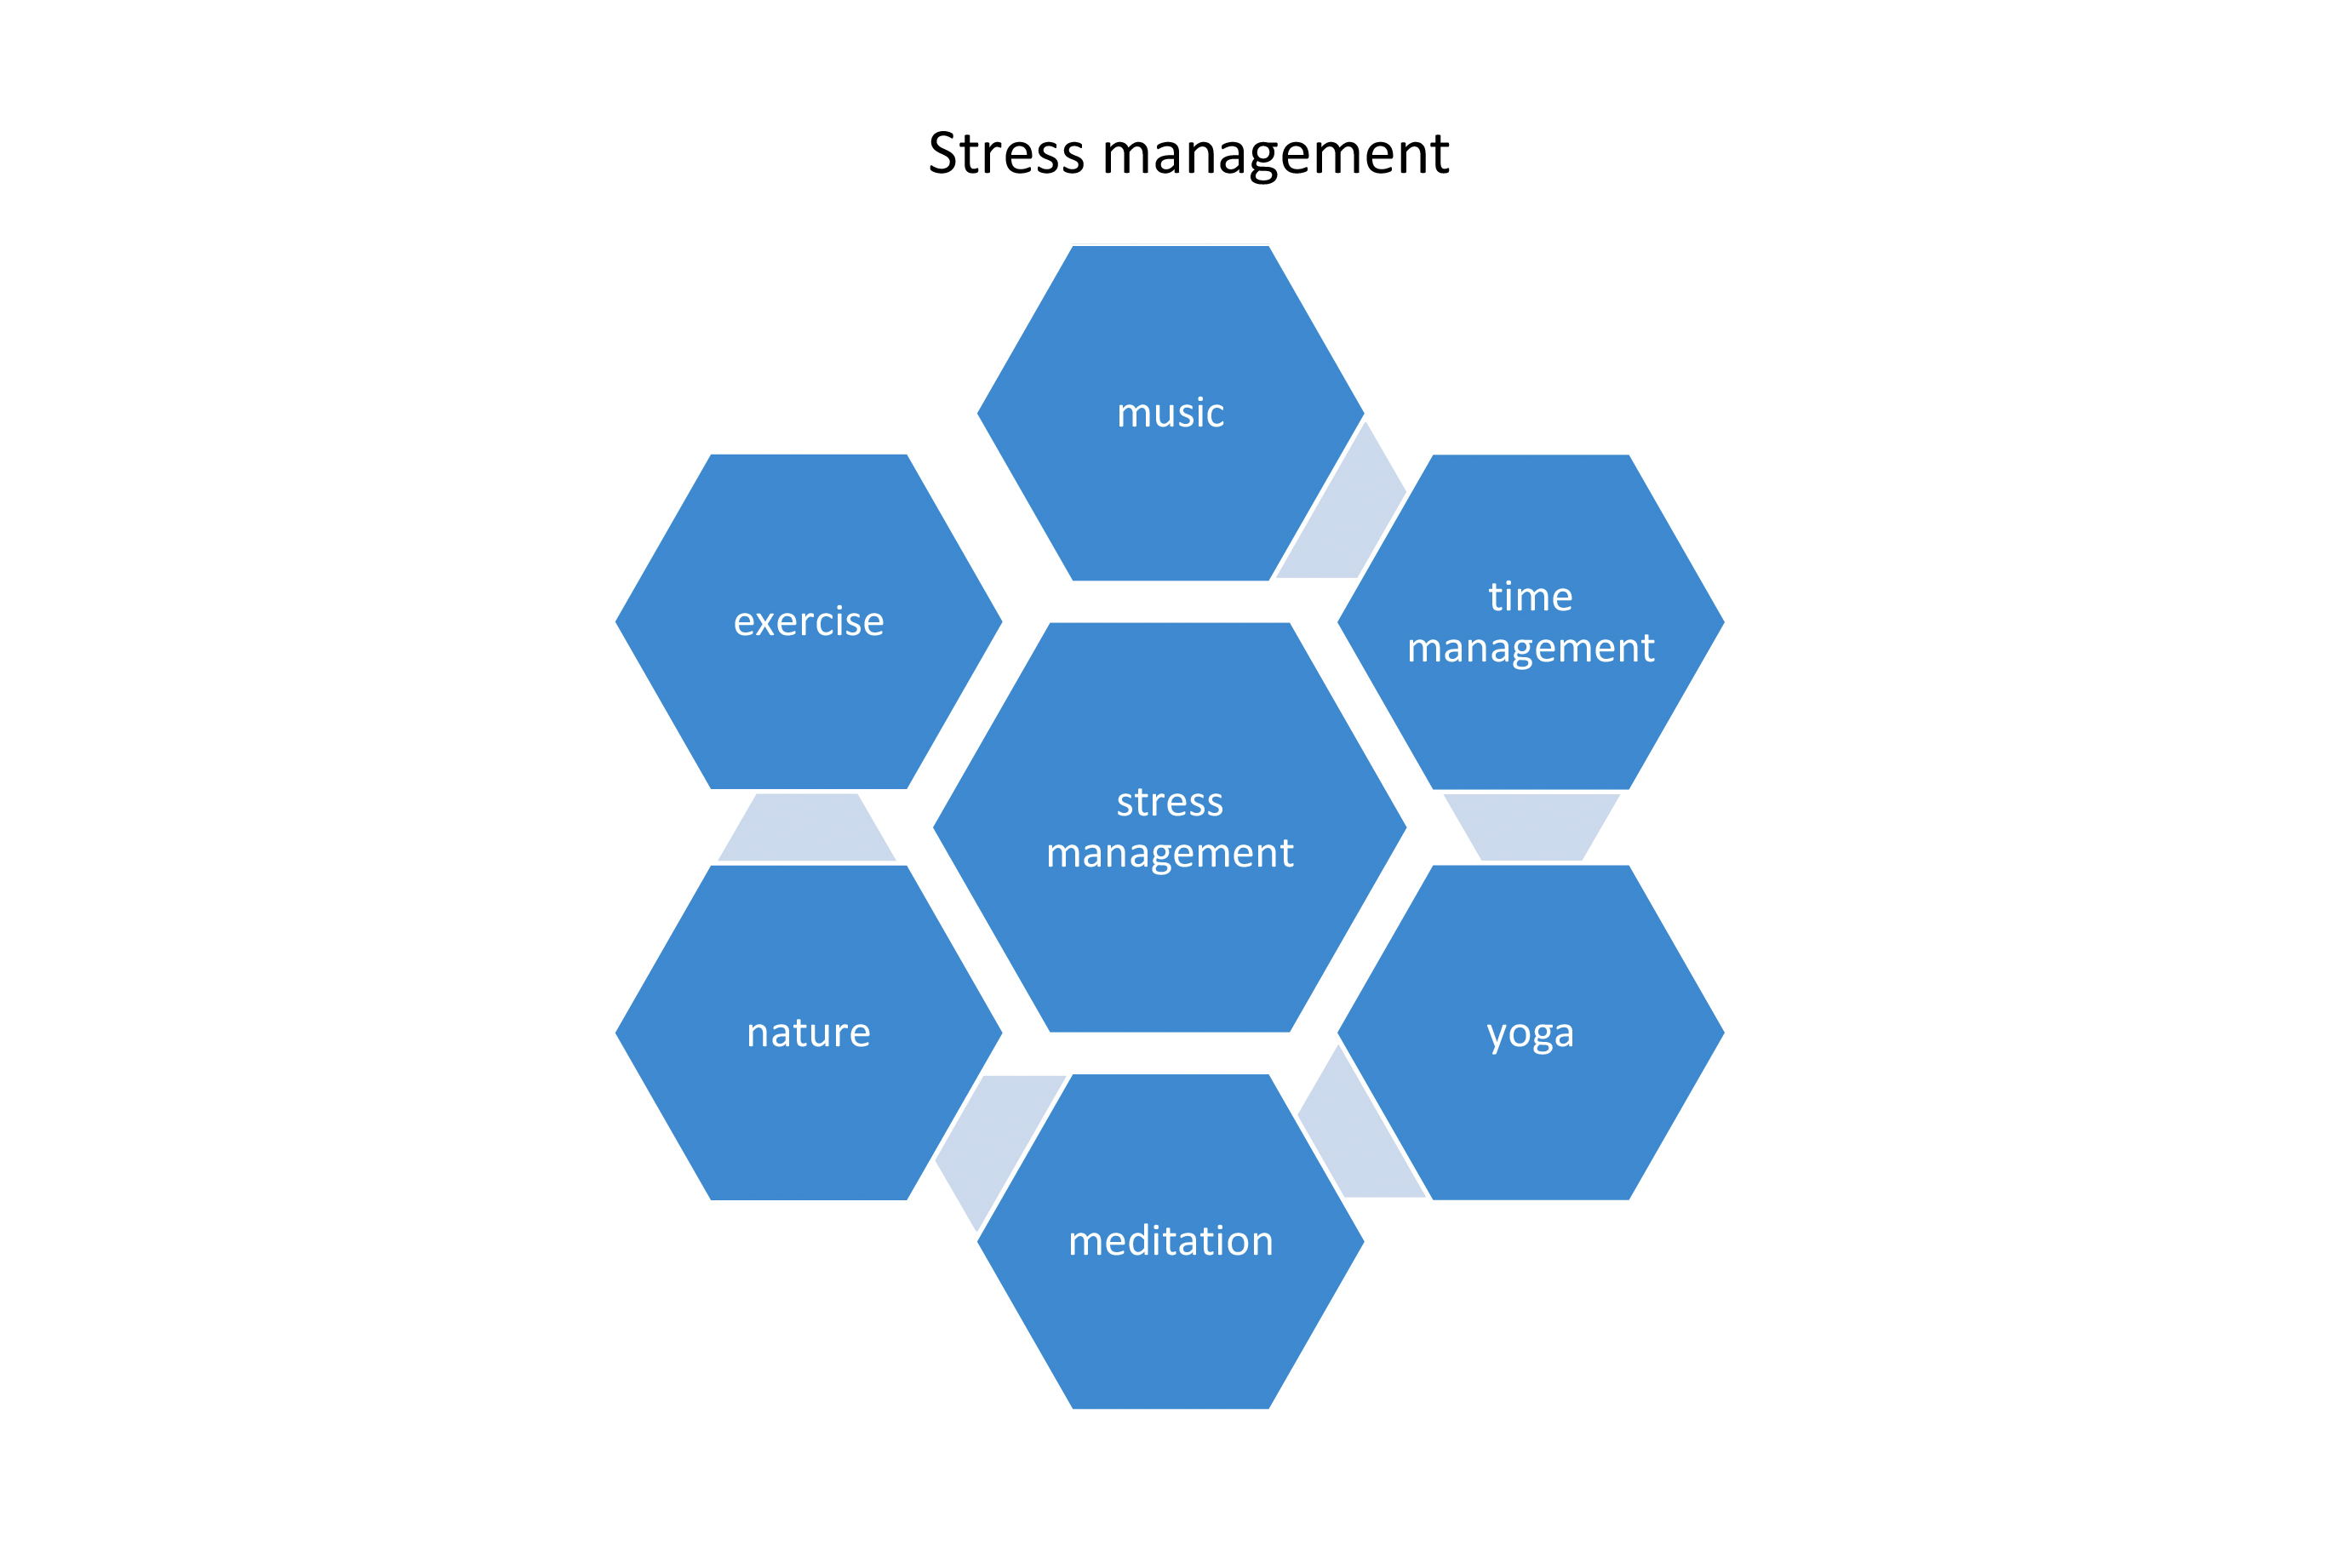 hr-strategies-for-managing-stress-in-the-workplace-2-openhrms